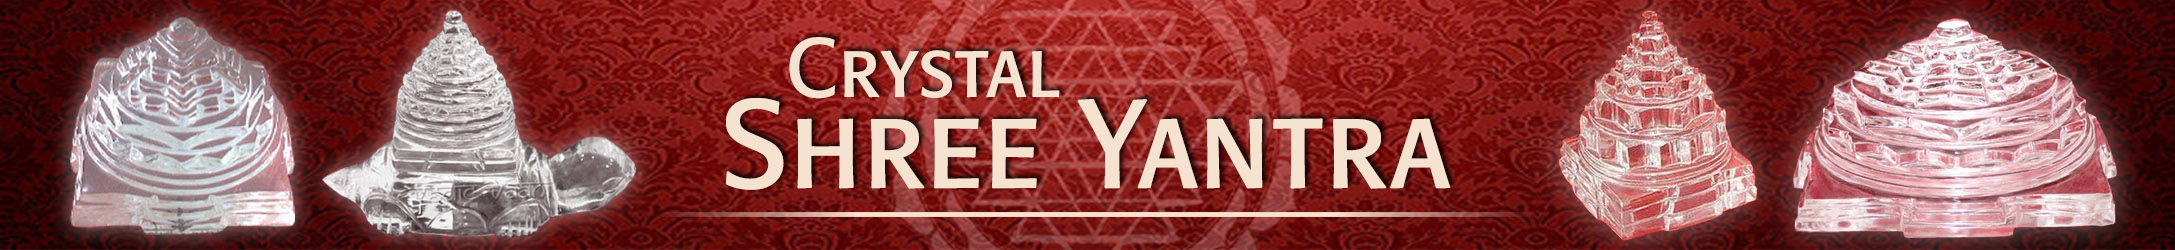 Crystal Shree Yantra